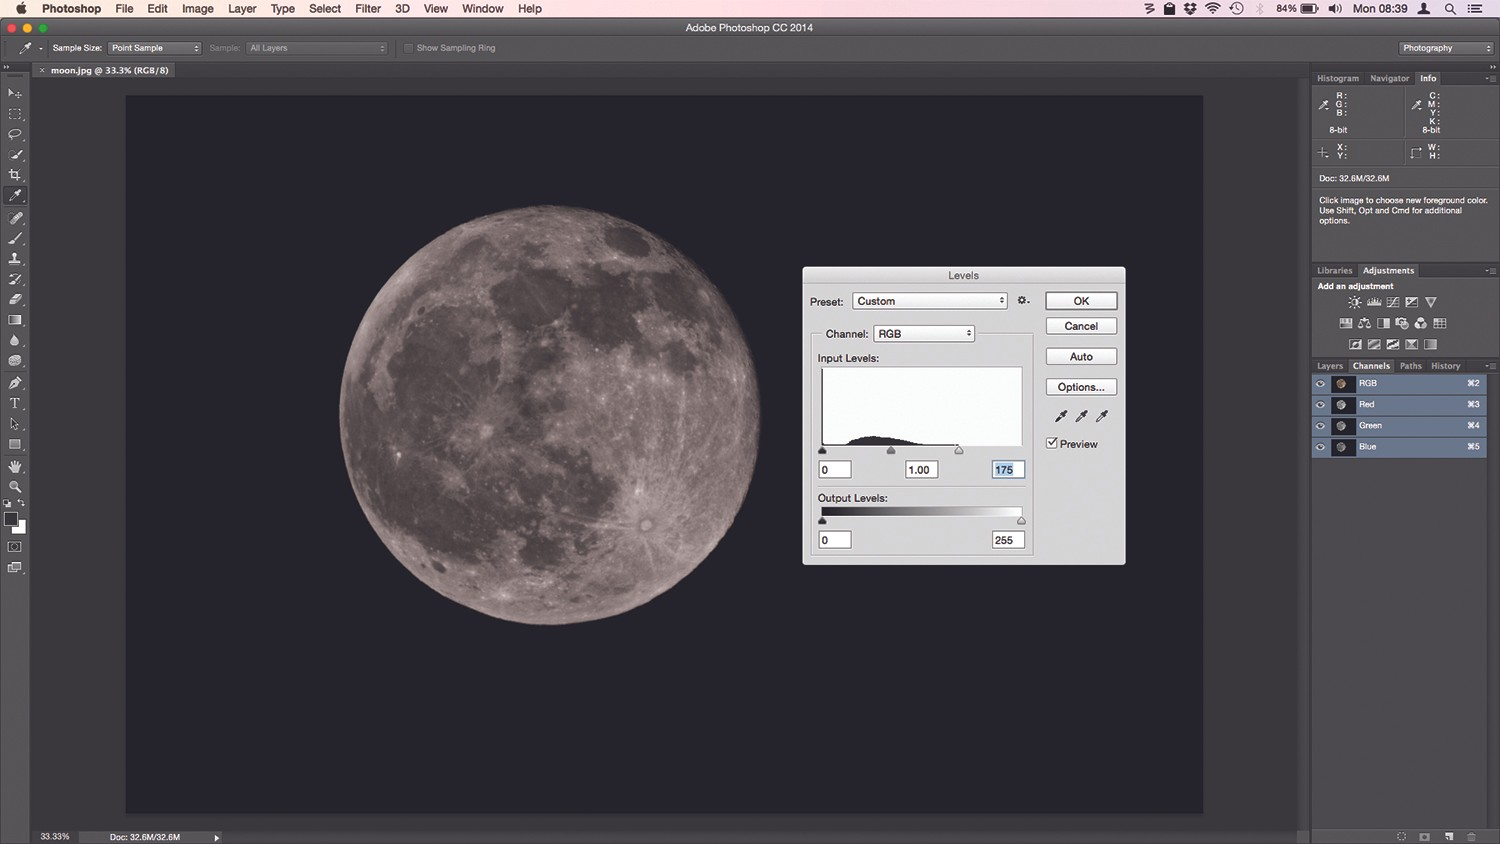 Þ Pulling the rightmost slider inwards brightens the lunar surface, but be vigilant of clipping. Credit: Ian Evenden